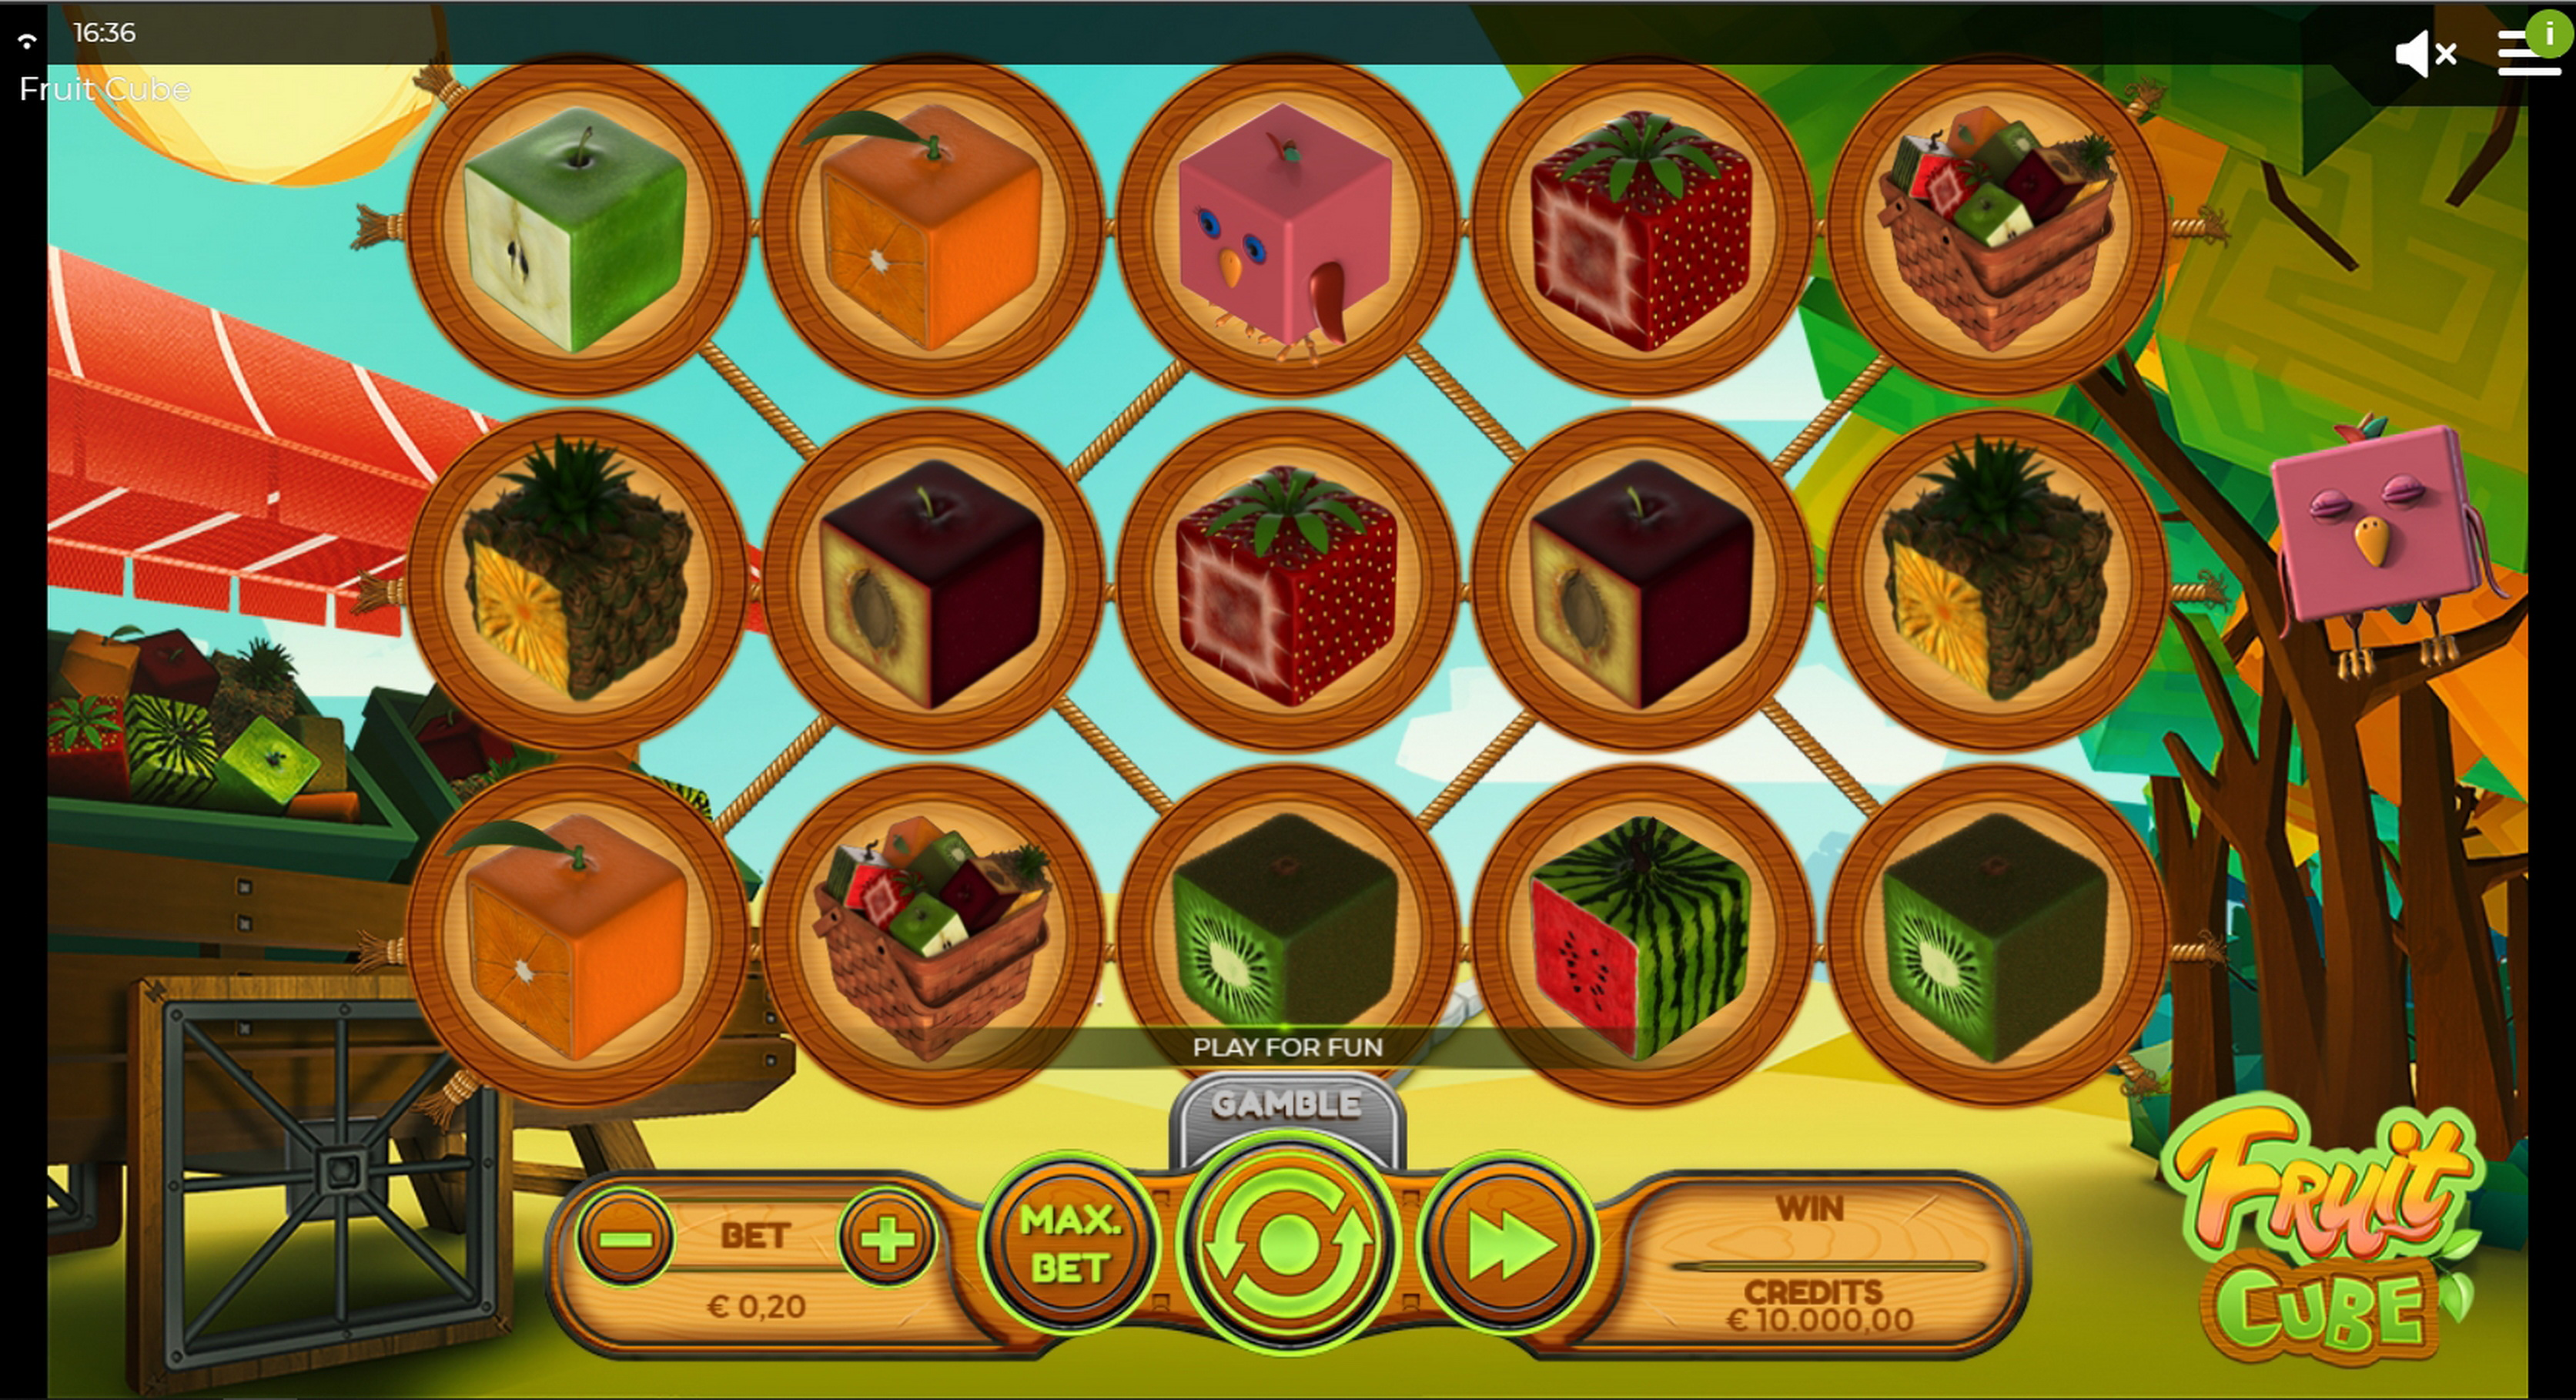 Reels in Fruit Cube Slot Game by Spinmatic